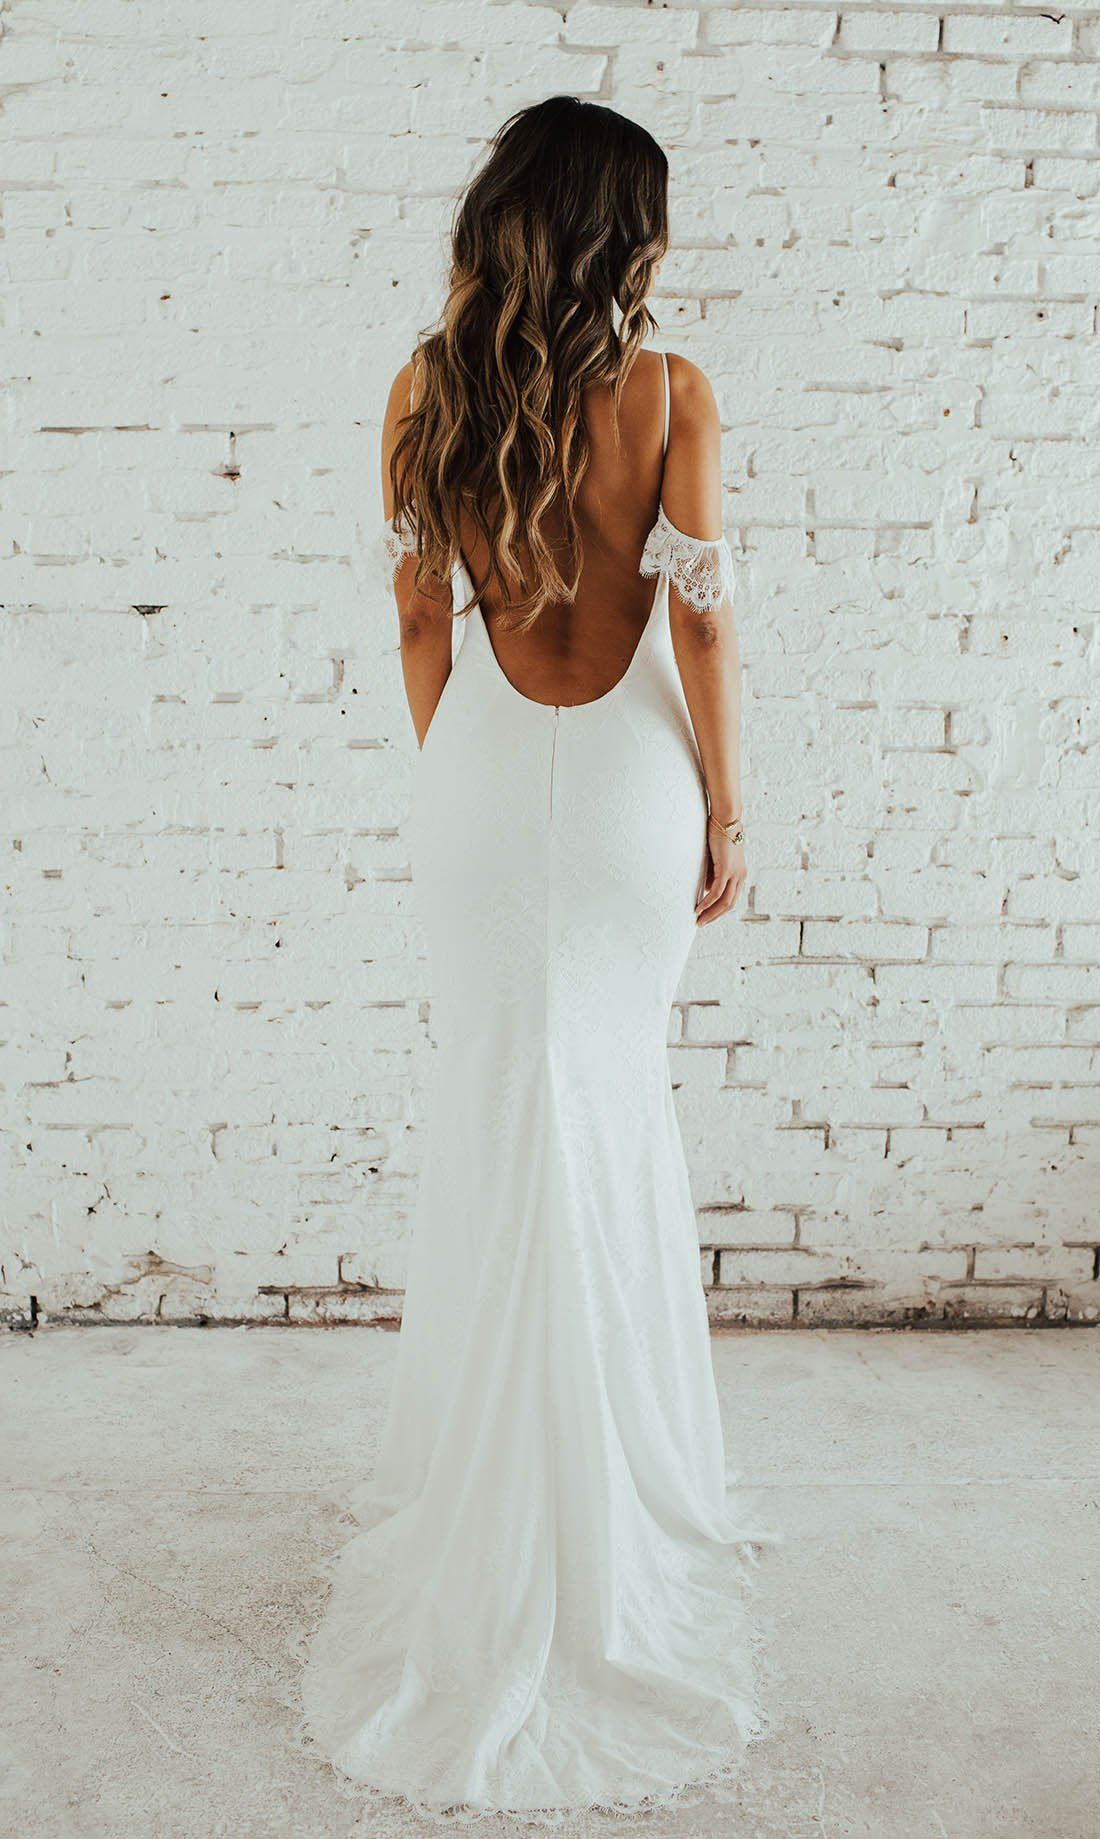 Madrid by katie may bridal modern bohemian wedding dresses sexy